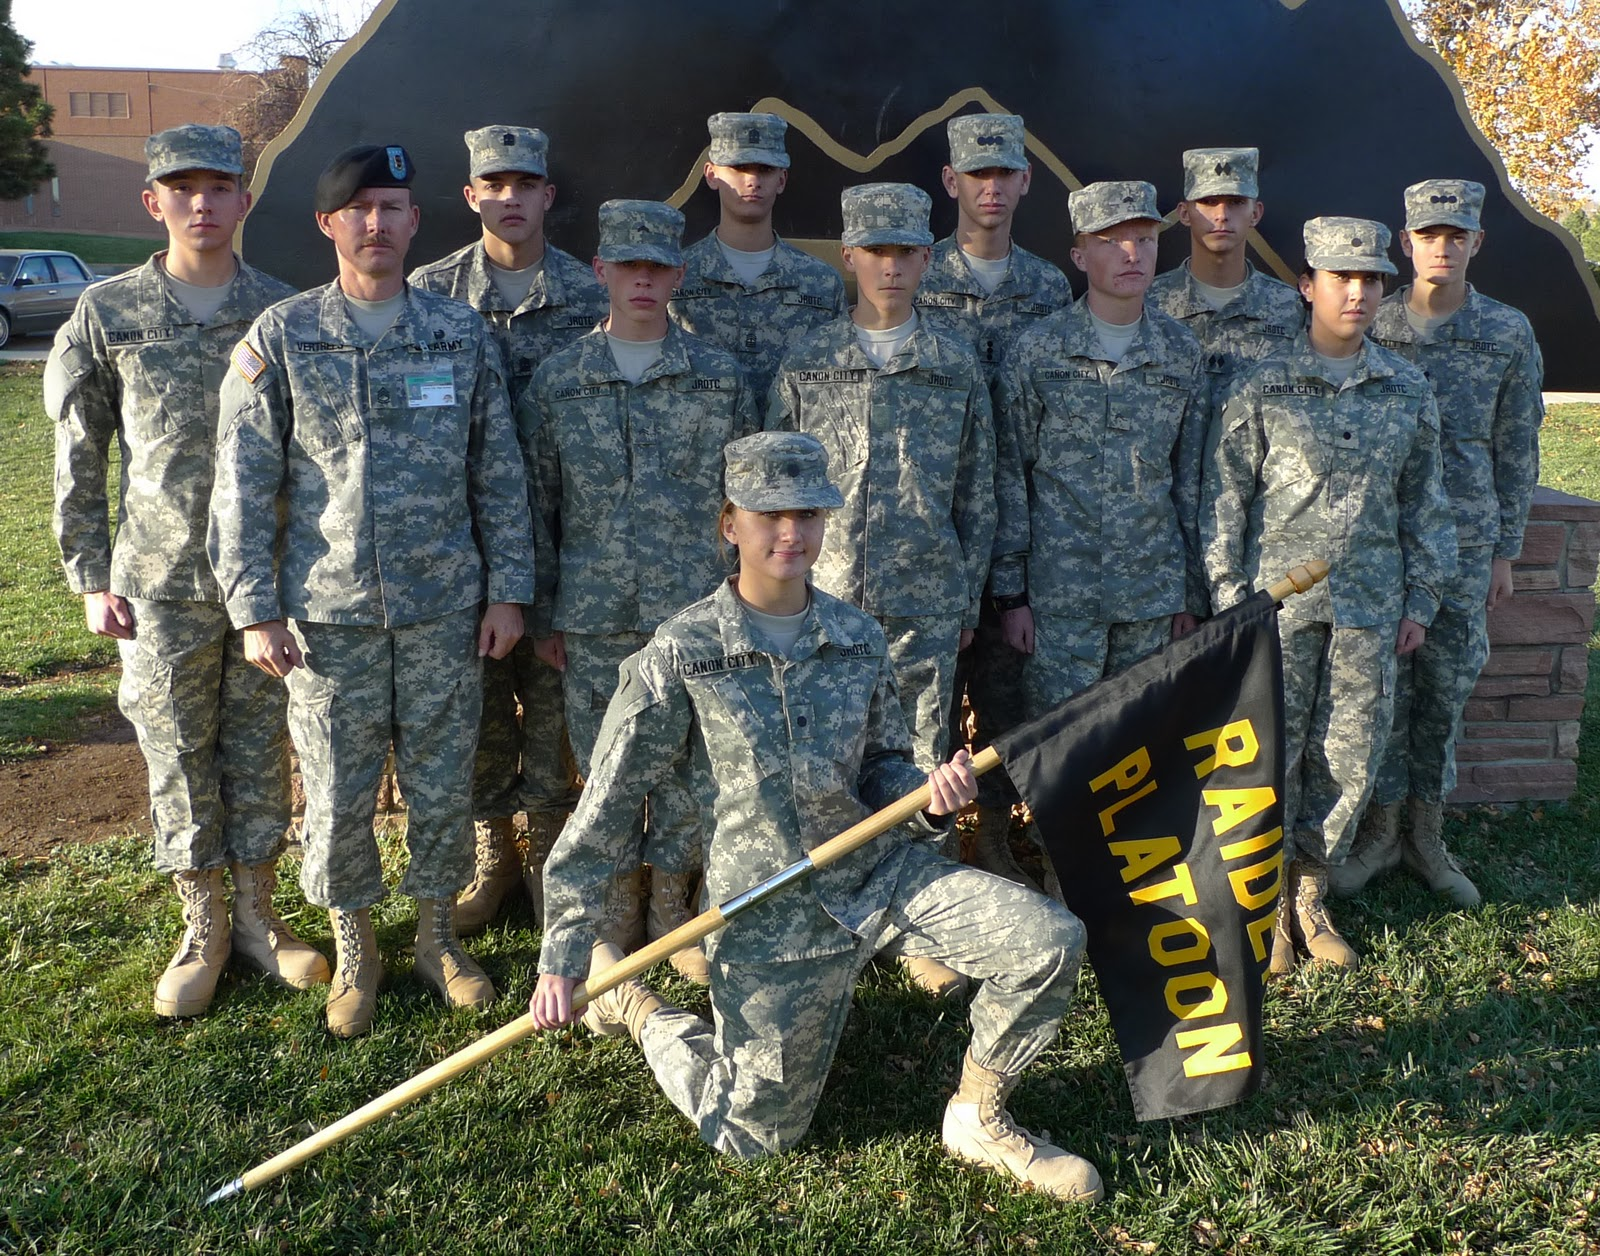 army jrotc Army rotc leadership excellence earn a commission and a degree army rotc is a college elective that allows you to earn a commission straight out of college as a second lieutenant in the army national guard, the army reserve, and the active army.